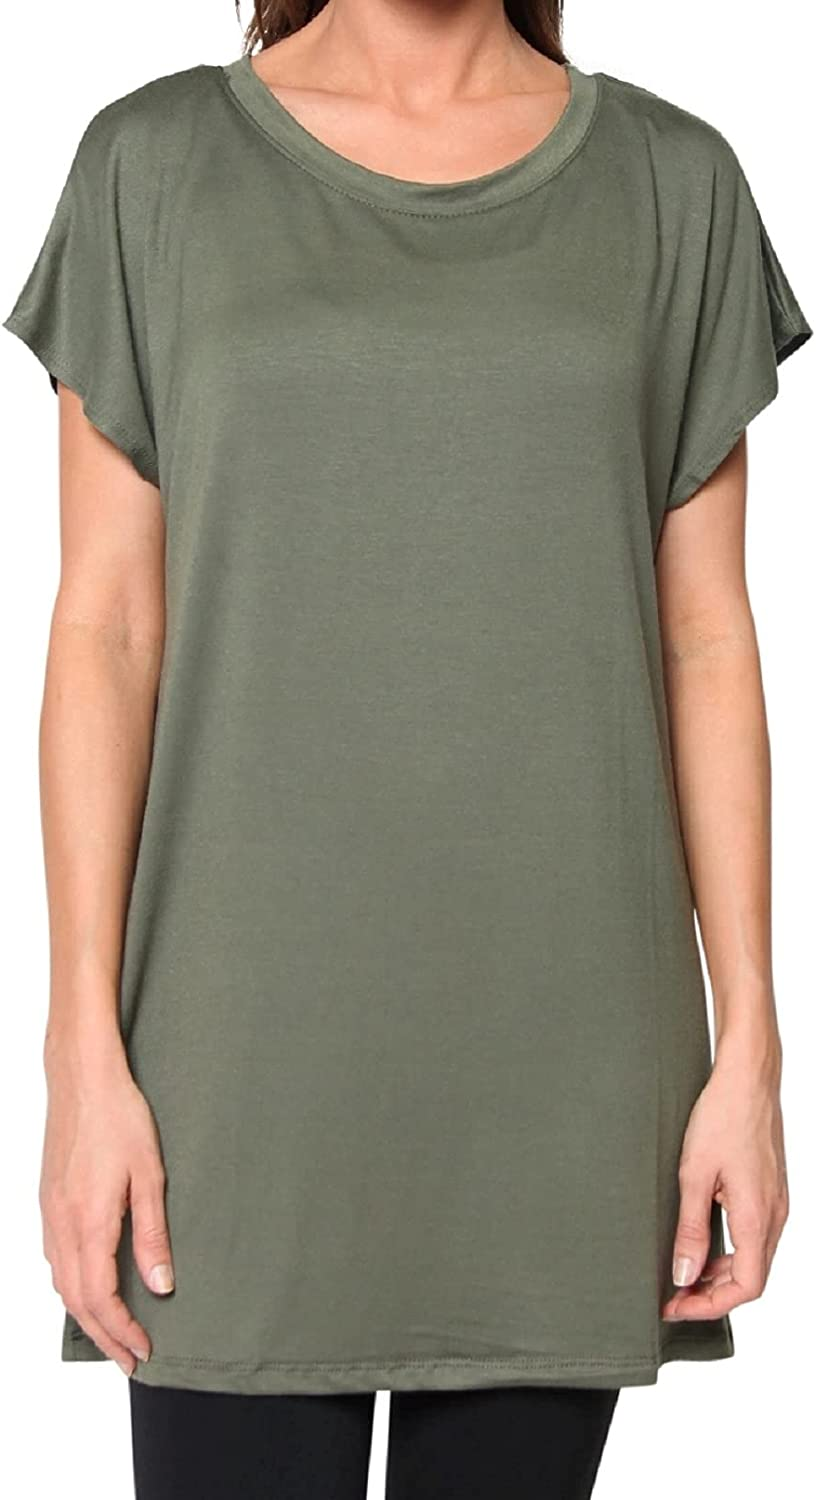 Free to Live Women's Tunic Top in Flowy Loose Fit with Kimono Sleeves